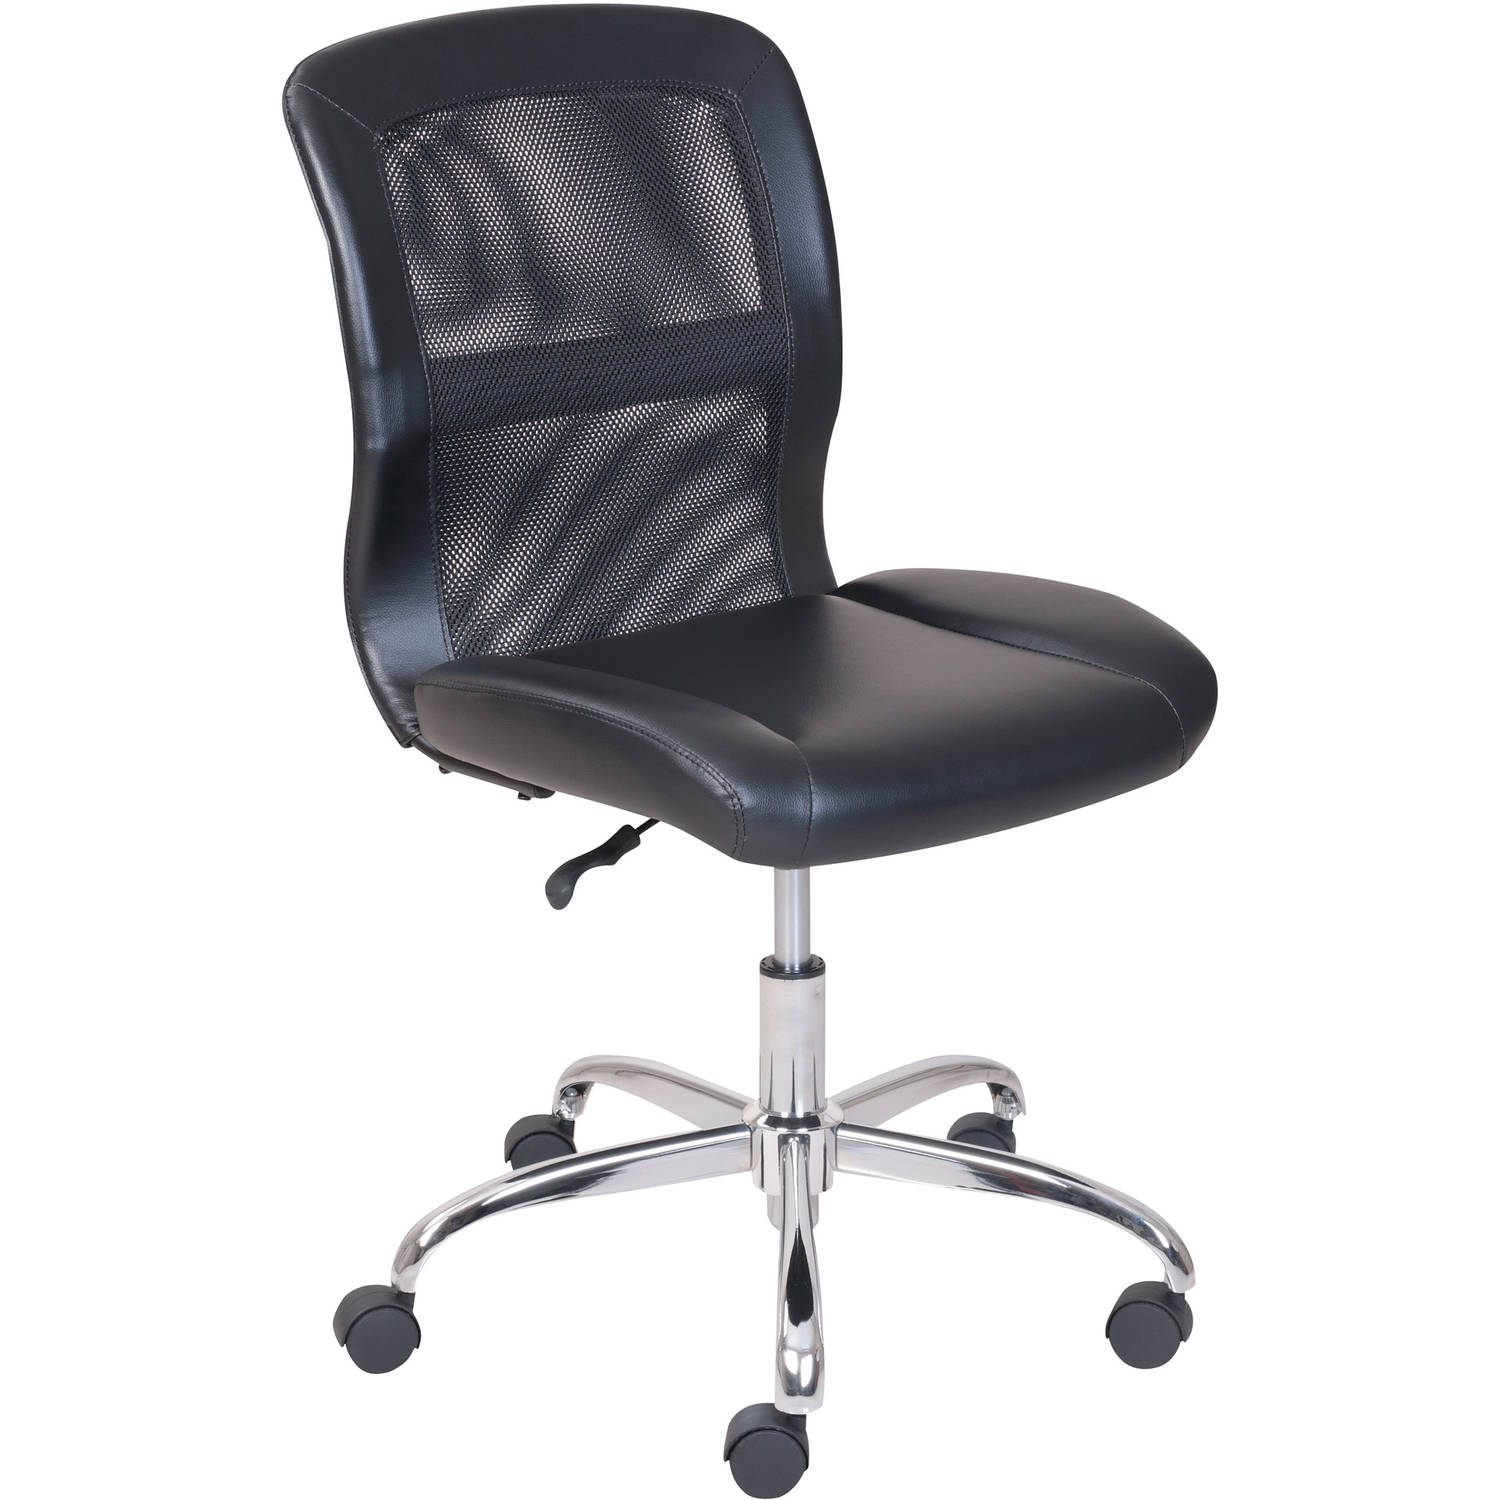 Mainstays Vinyl and Mesh Task Chair Multiple Colors Black eBay